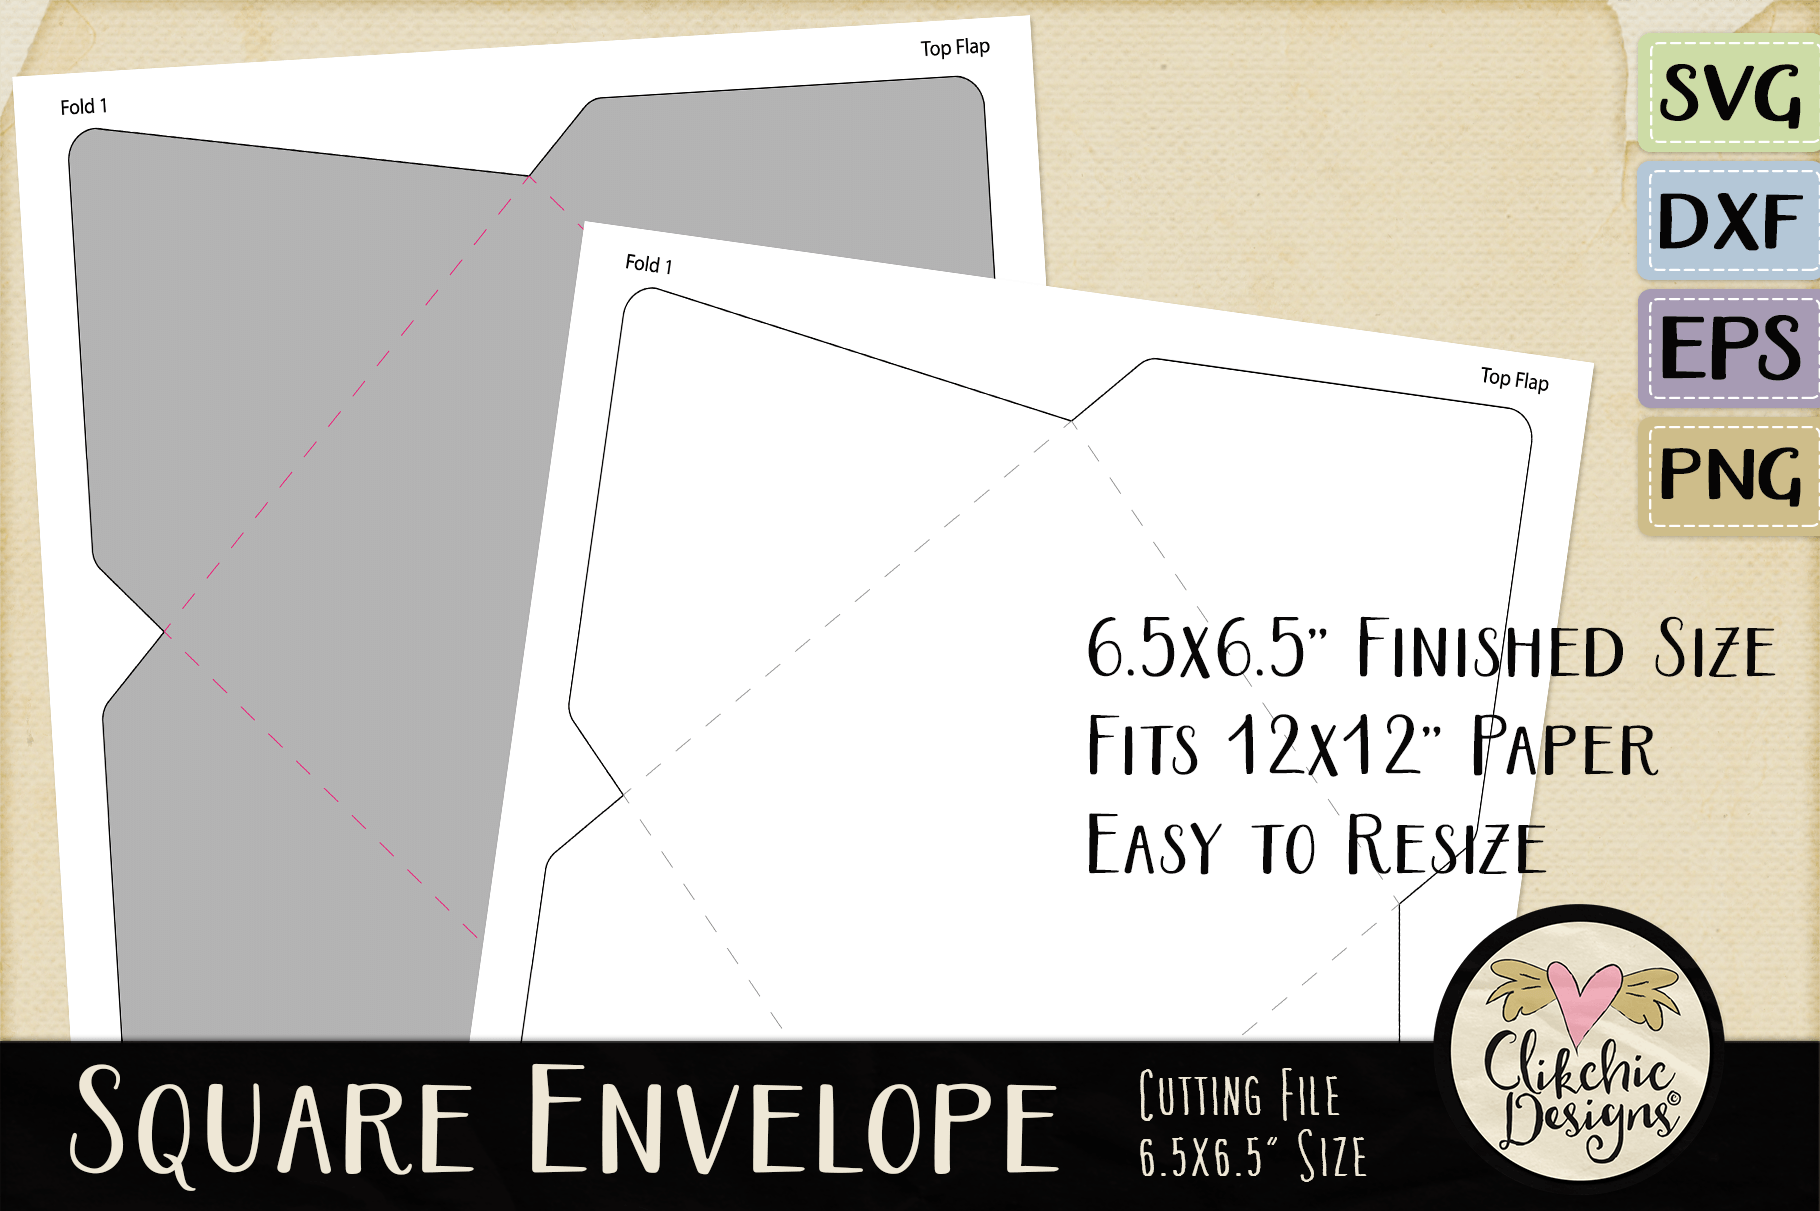 Square Envelope SVG - Square Envelope Cutting File Template example image 4